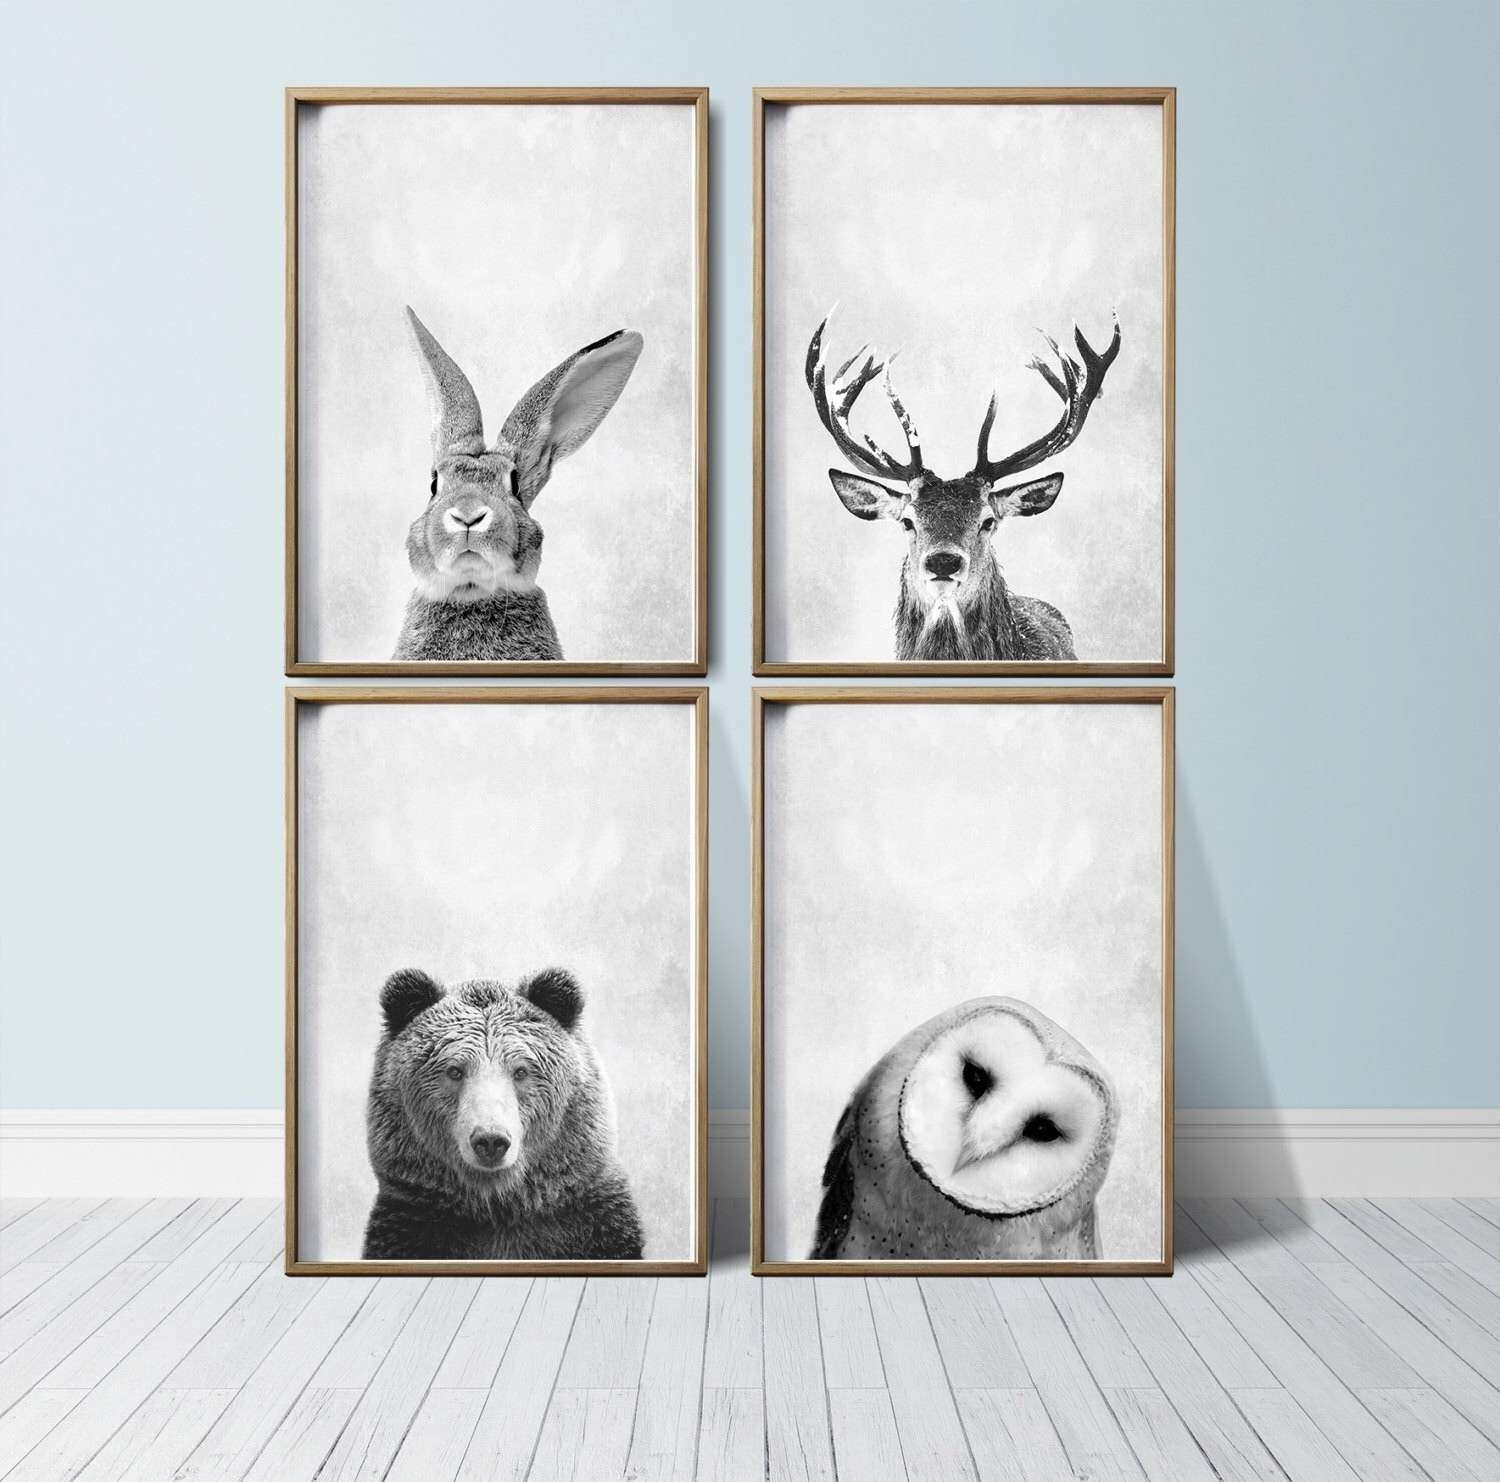 Unique Wall Art Prints Luxury Nursery Wall Art Animal Print Art With Best And Newest Woodland Nursery Wall Art (Gallery 11 of 20)